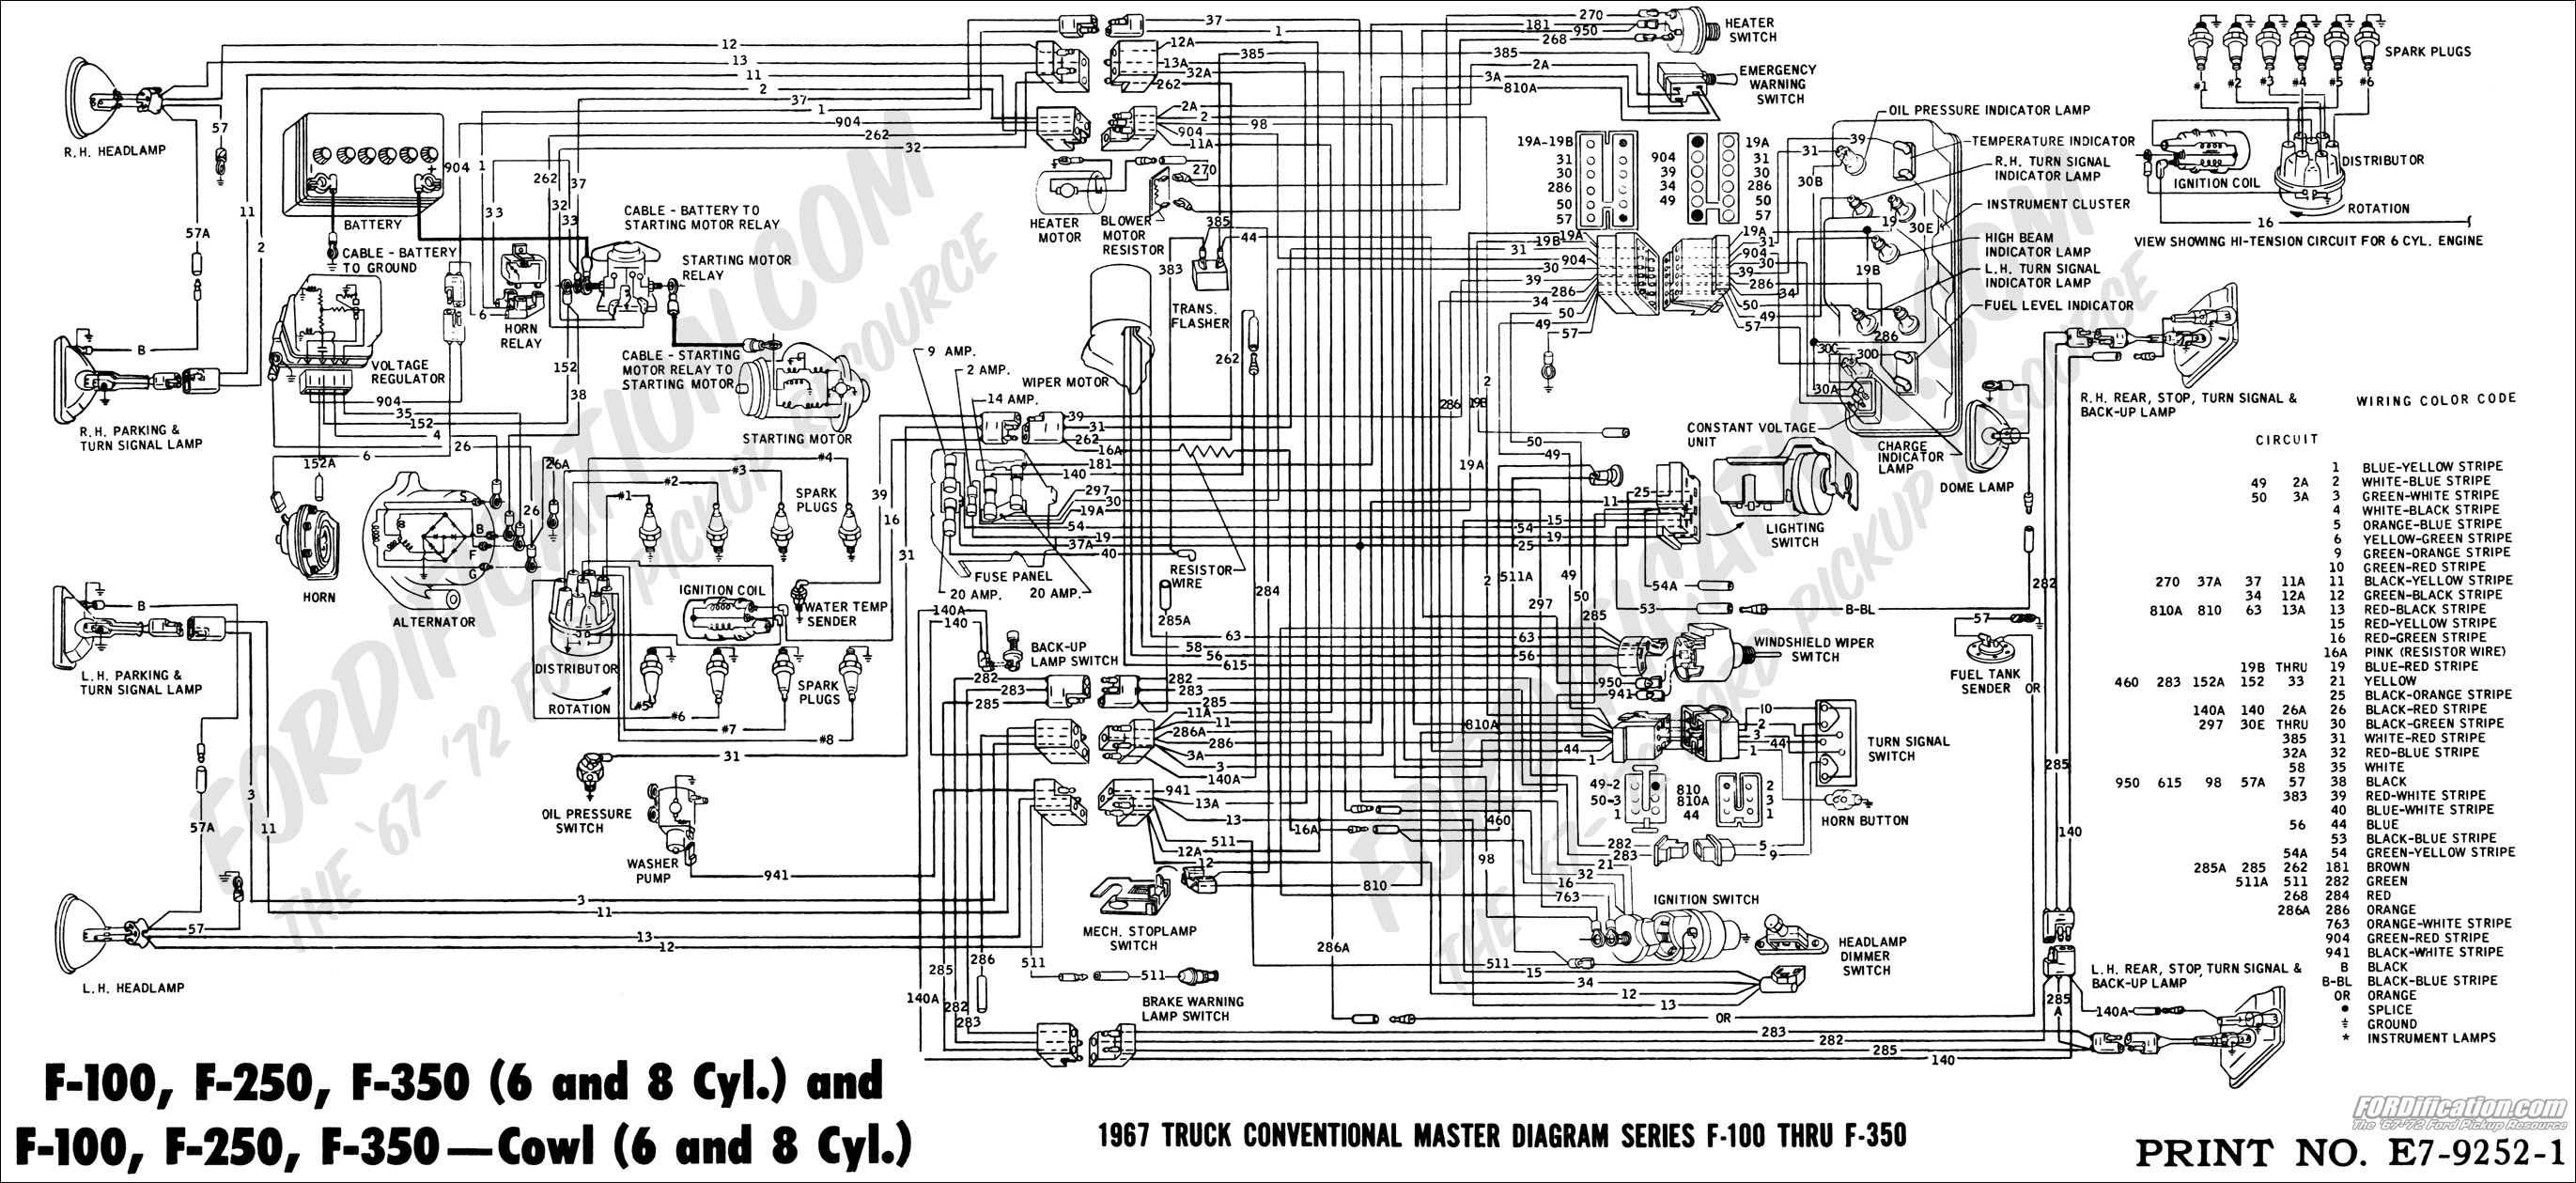 1983 E350 Wiring Diagram Wiring Diagram Data Bronco Wiring Diagram 1992  E350 Wiring Diagram